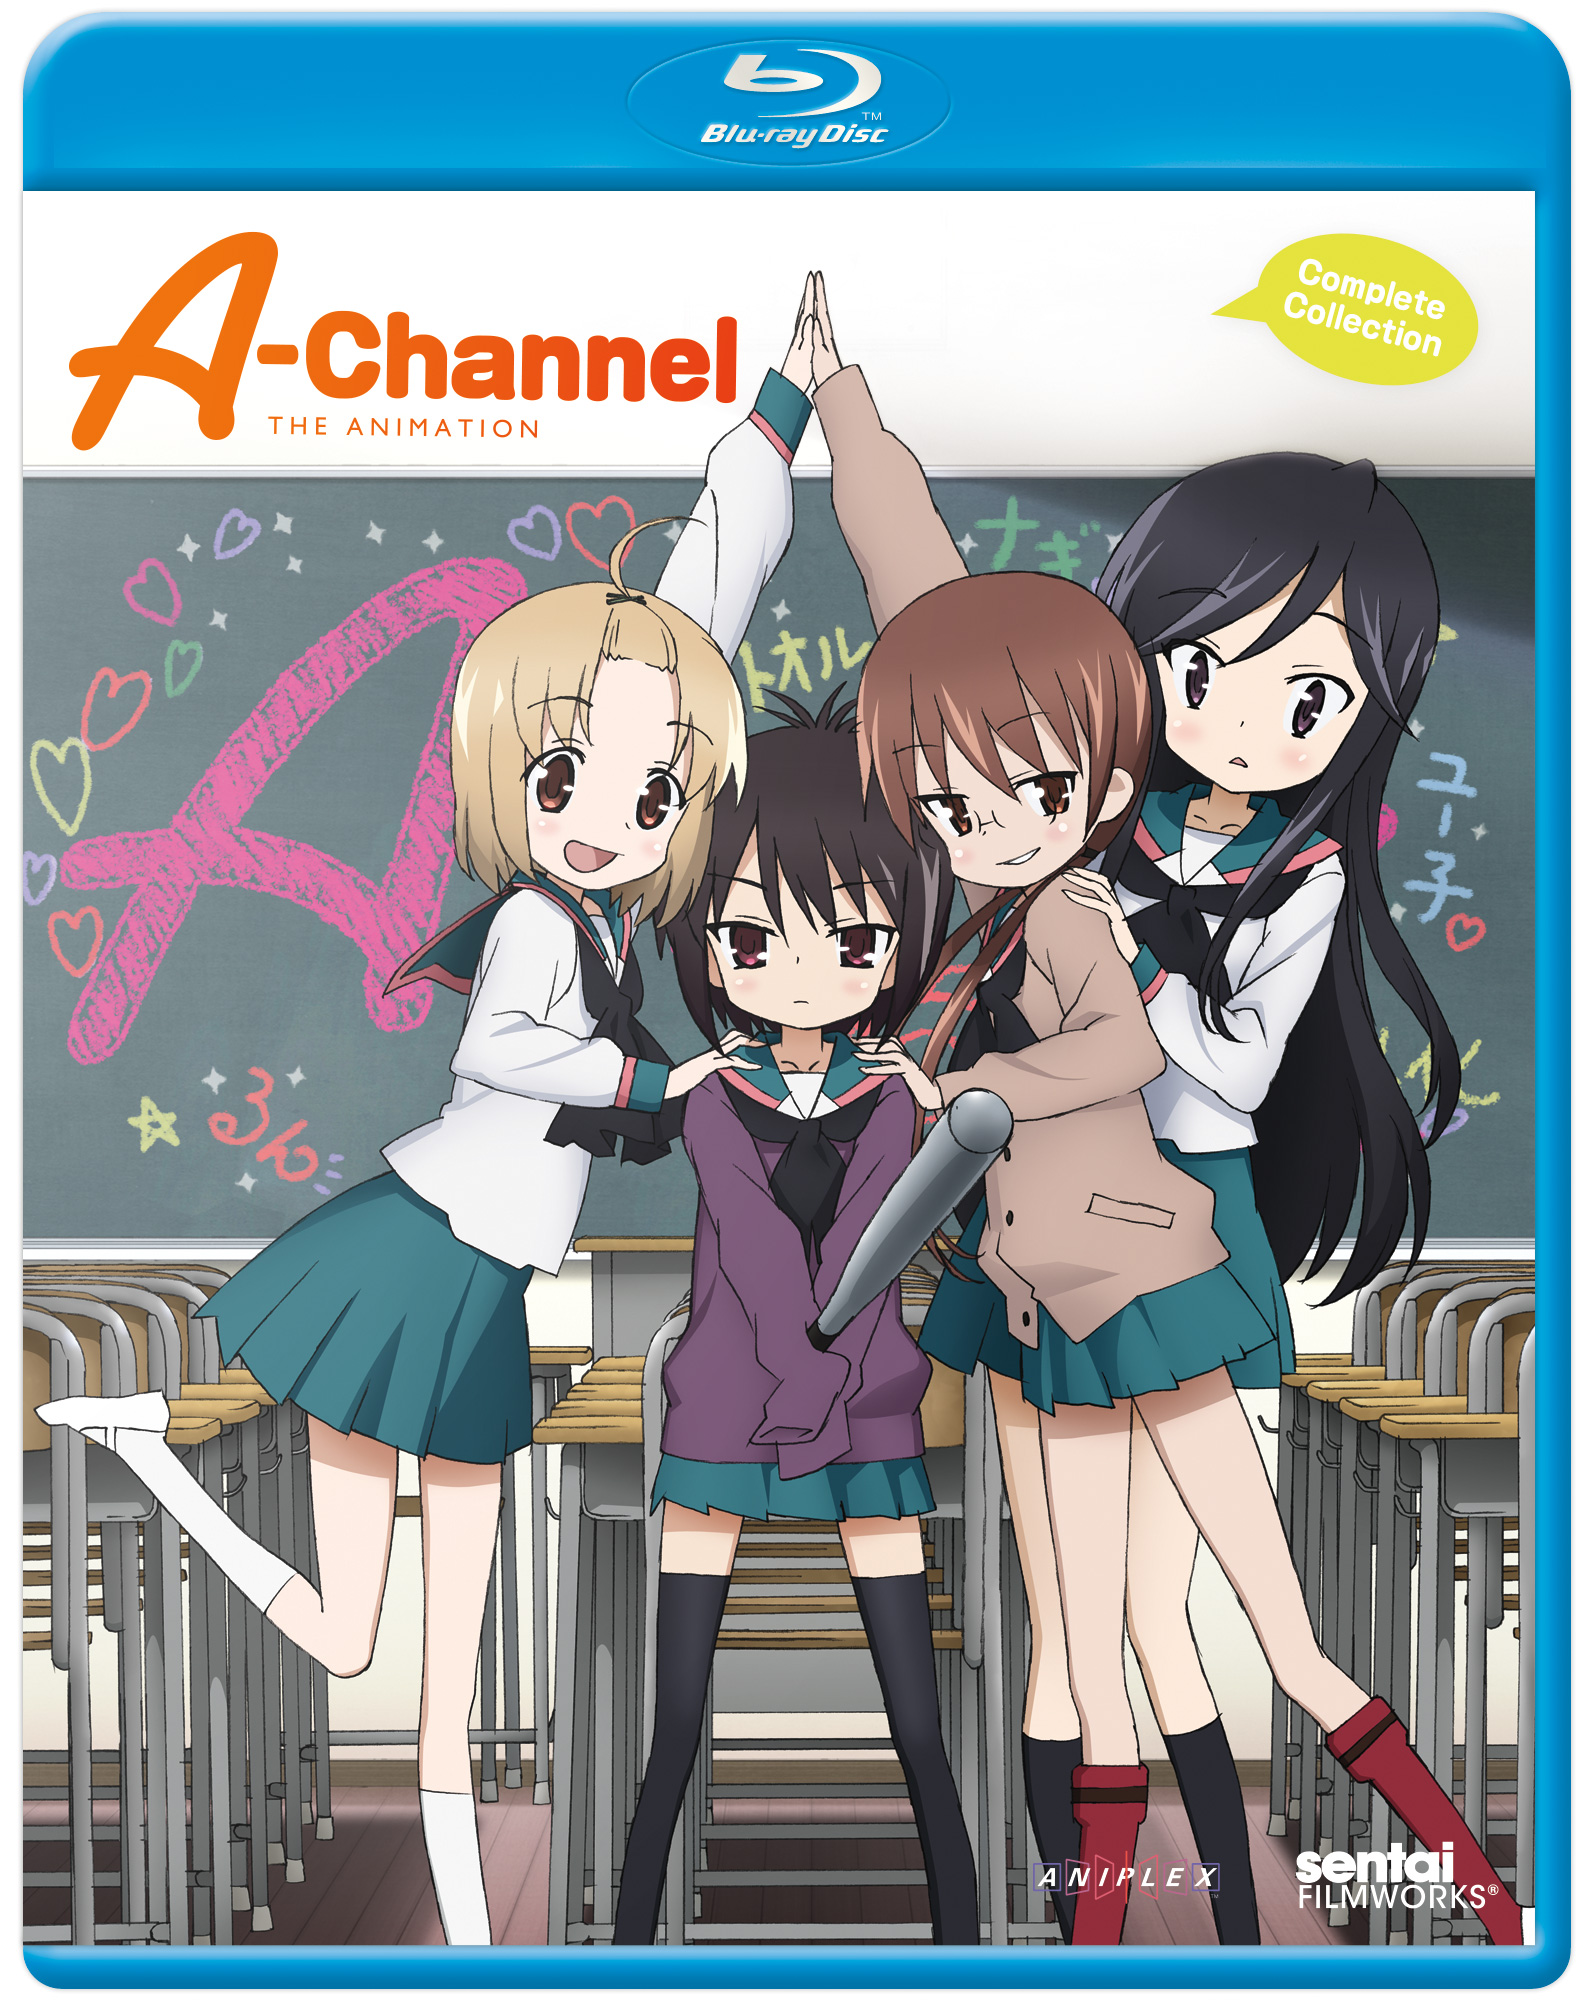 A-Channel Blu-ray 814131013460